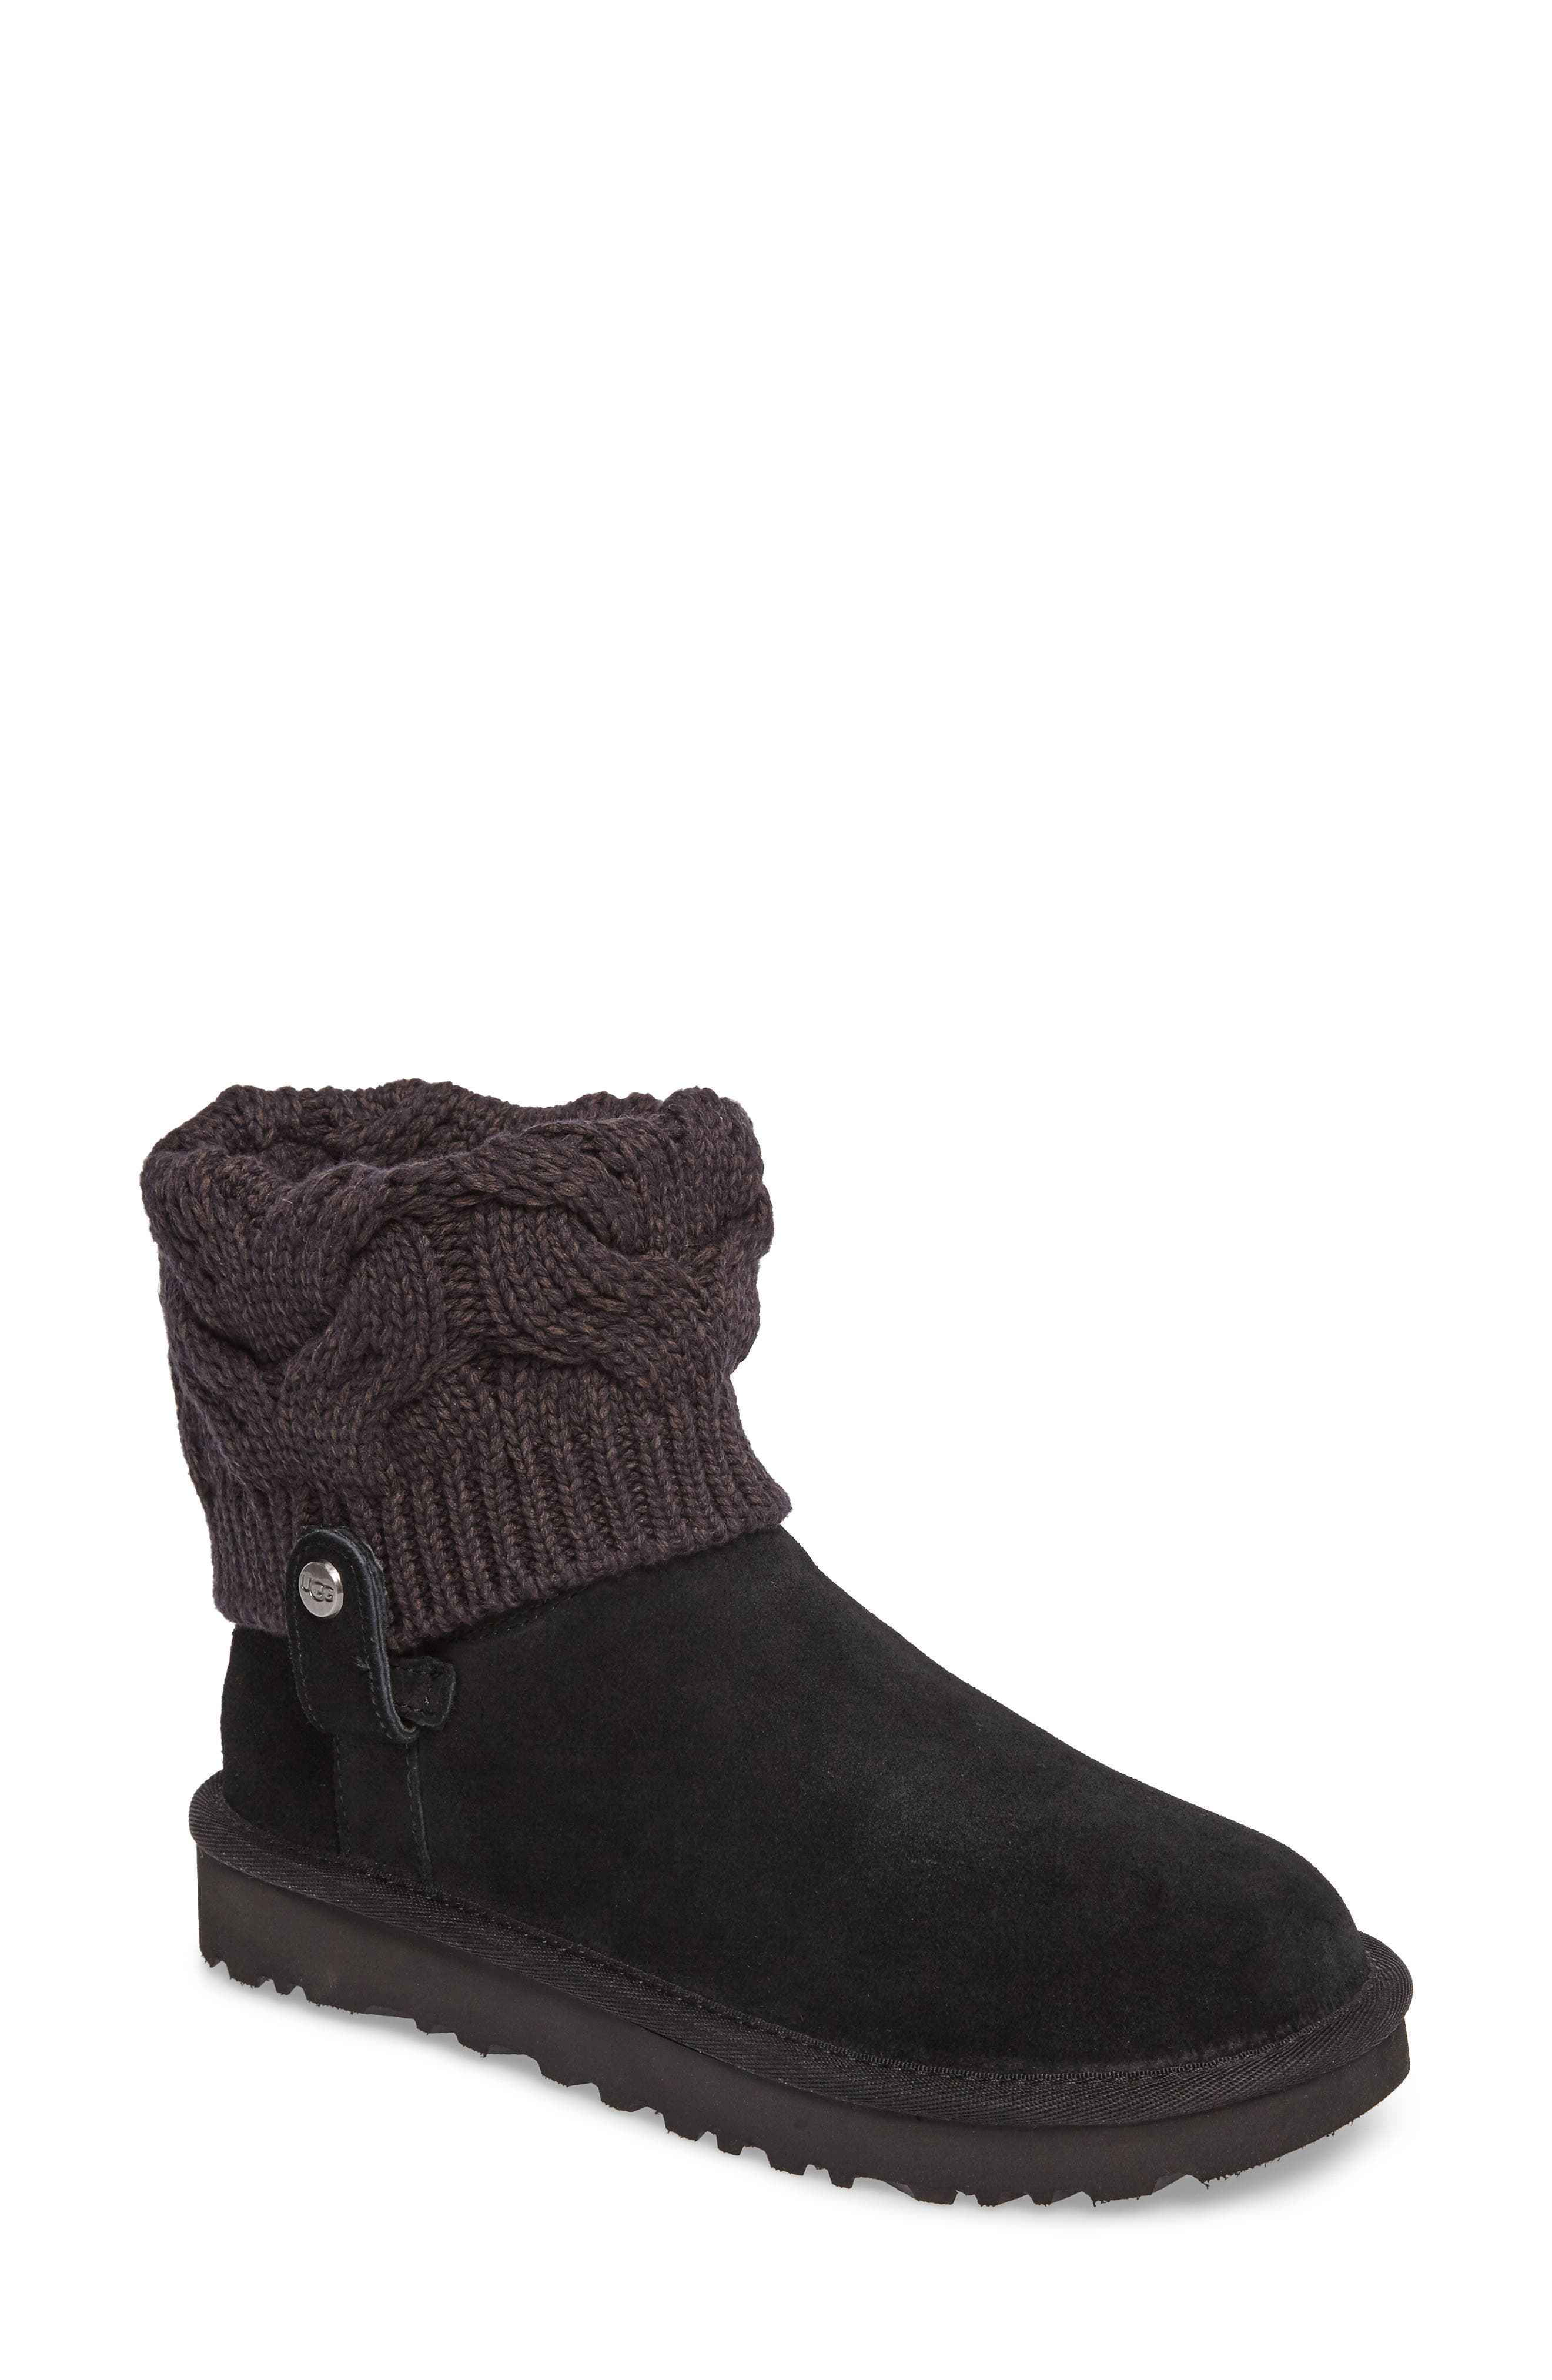 Saela Knit Cuff Boot,                             Main thumbnail 1, color,                             Black Suede